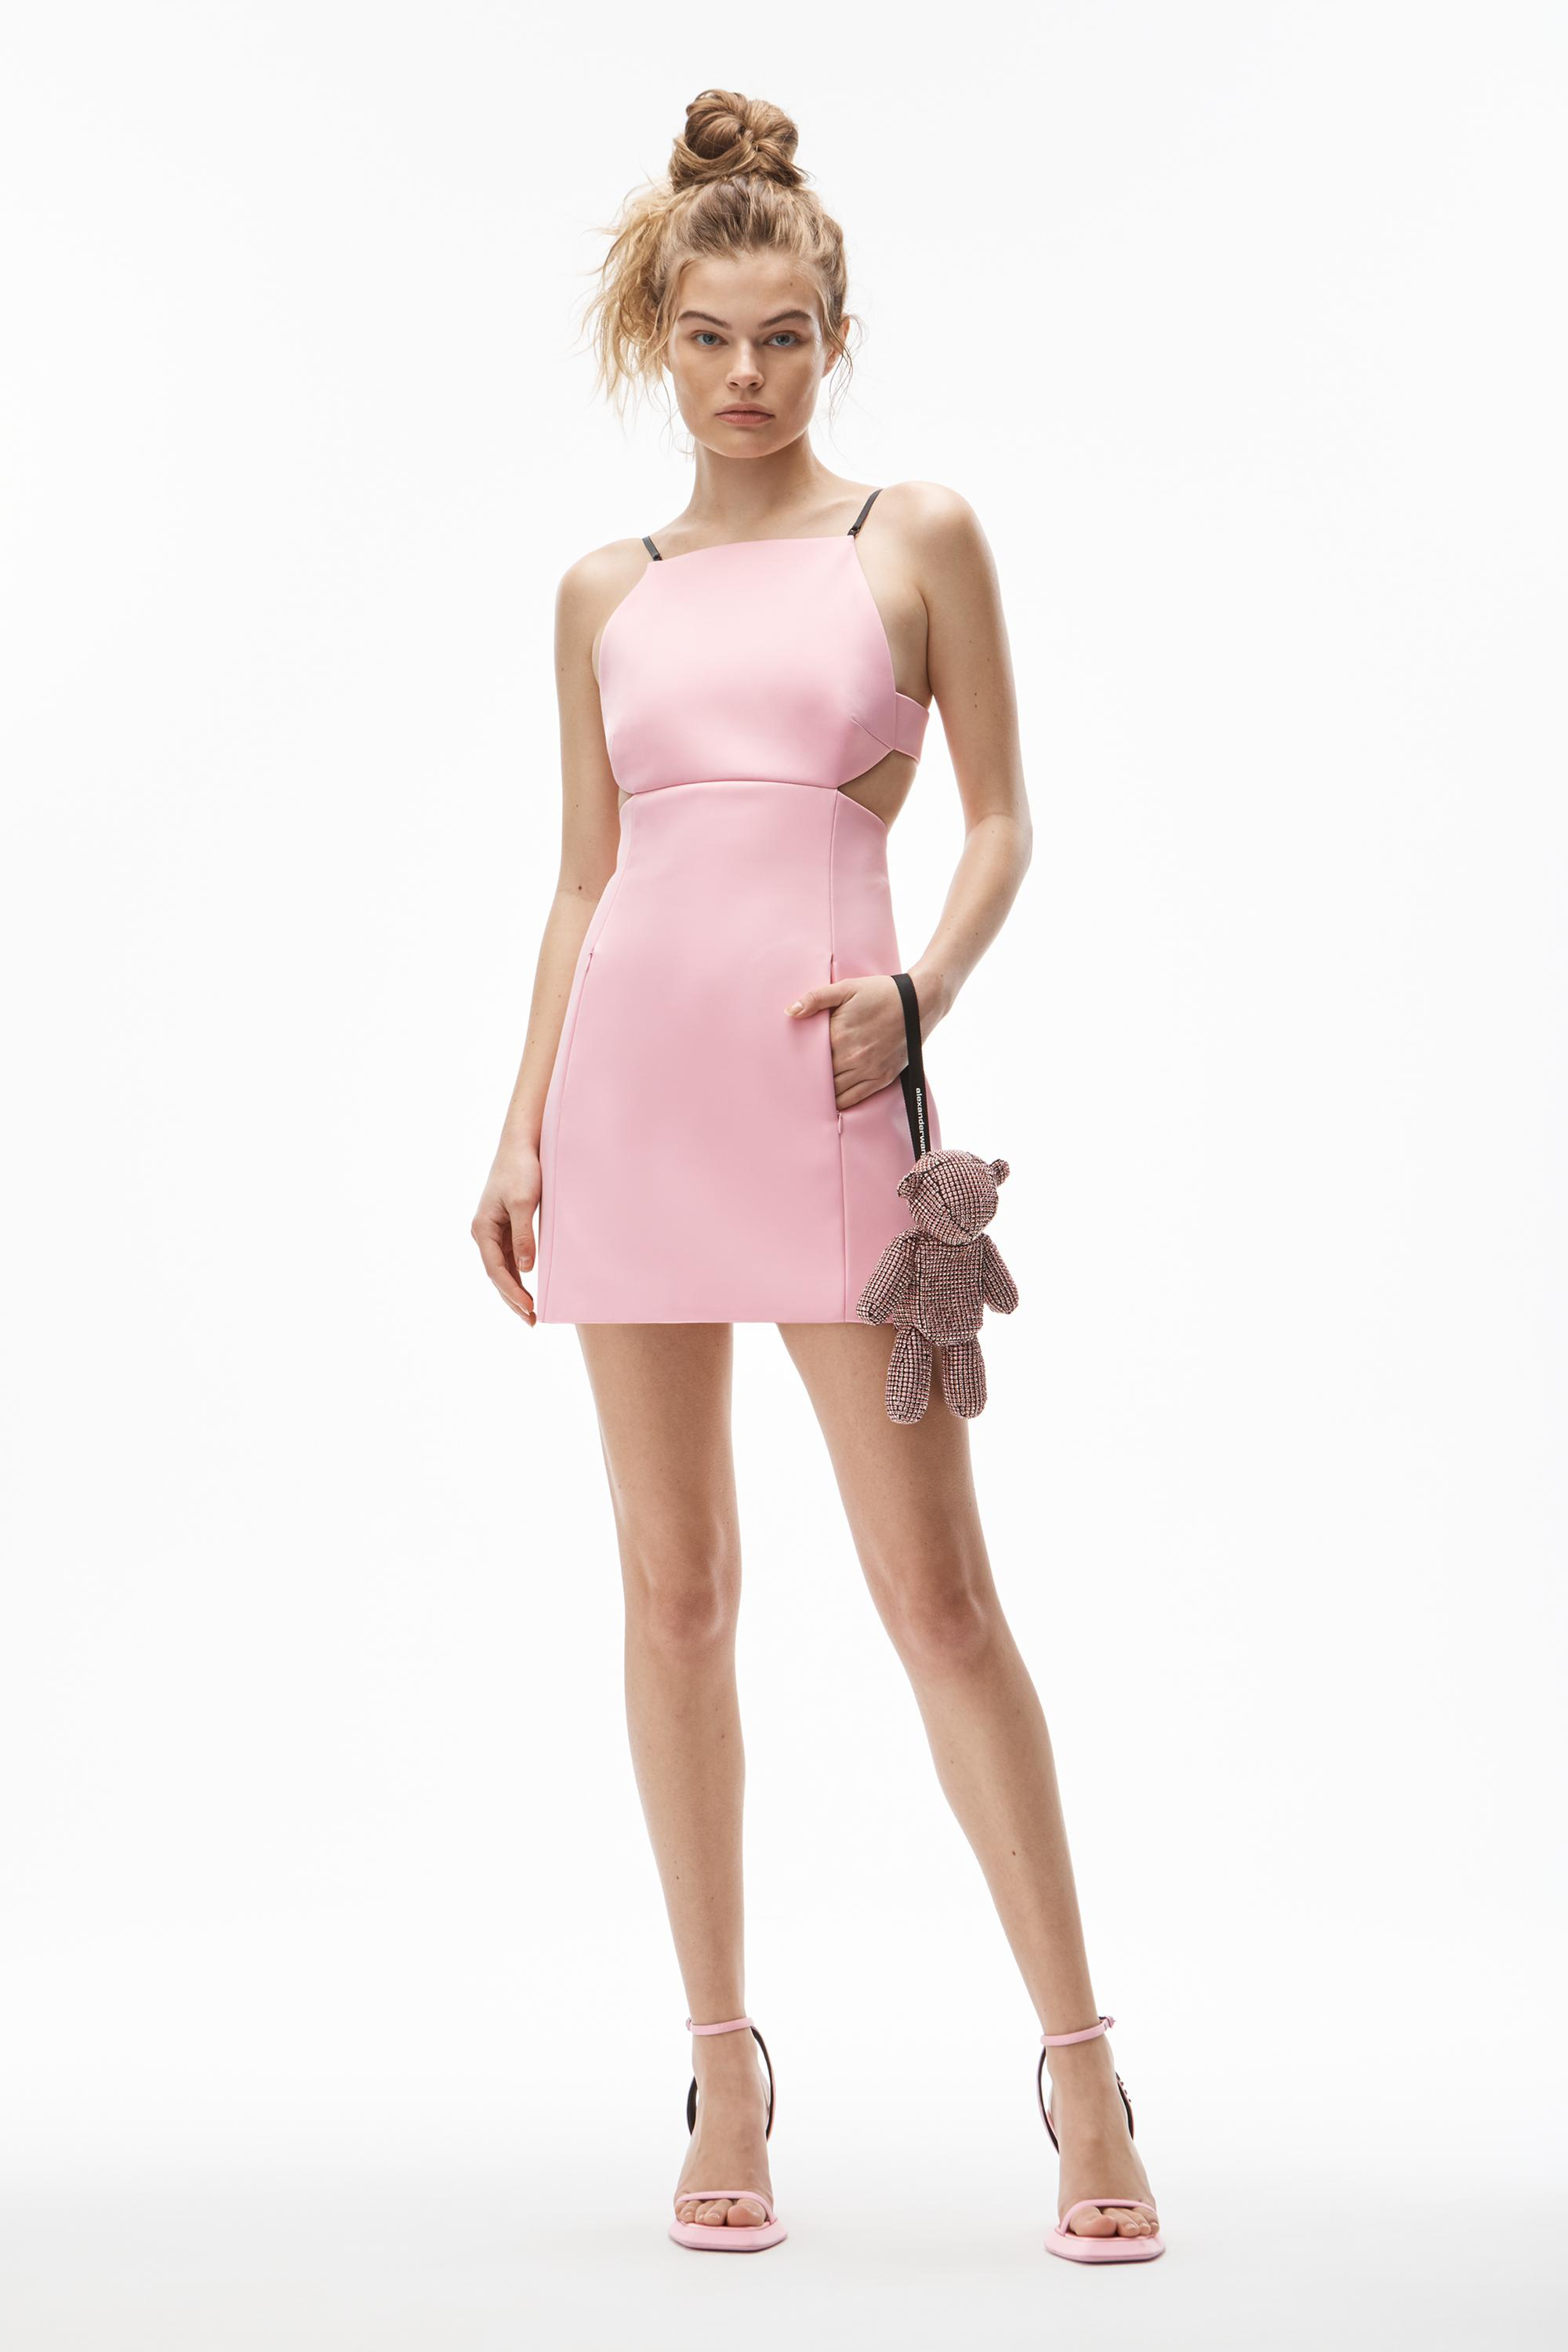 cutout dress with charms in heavy satin